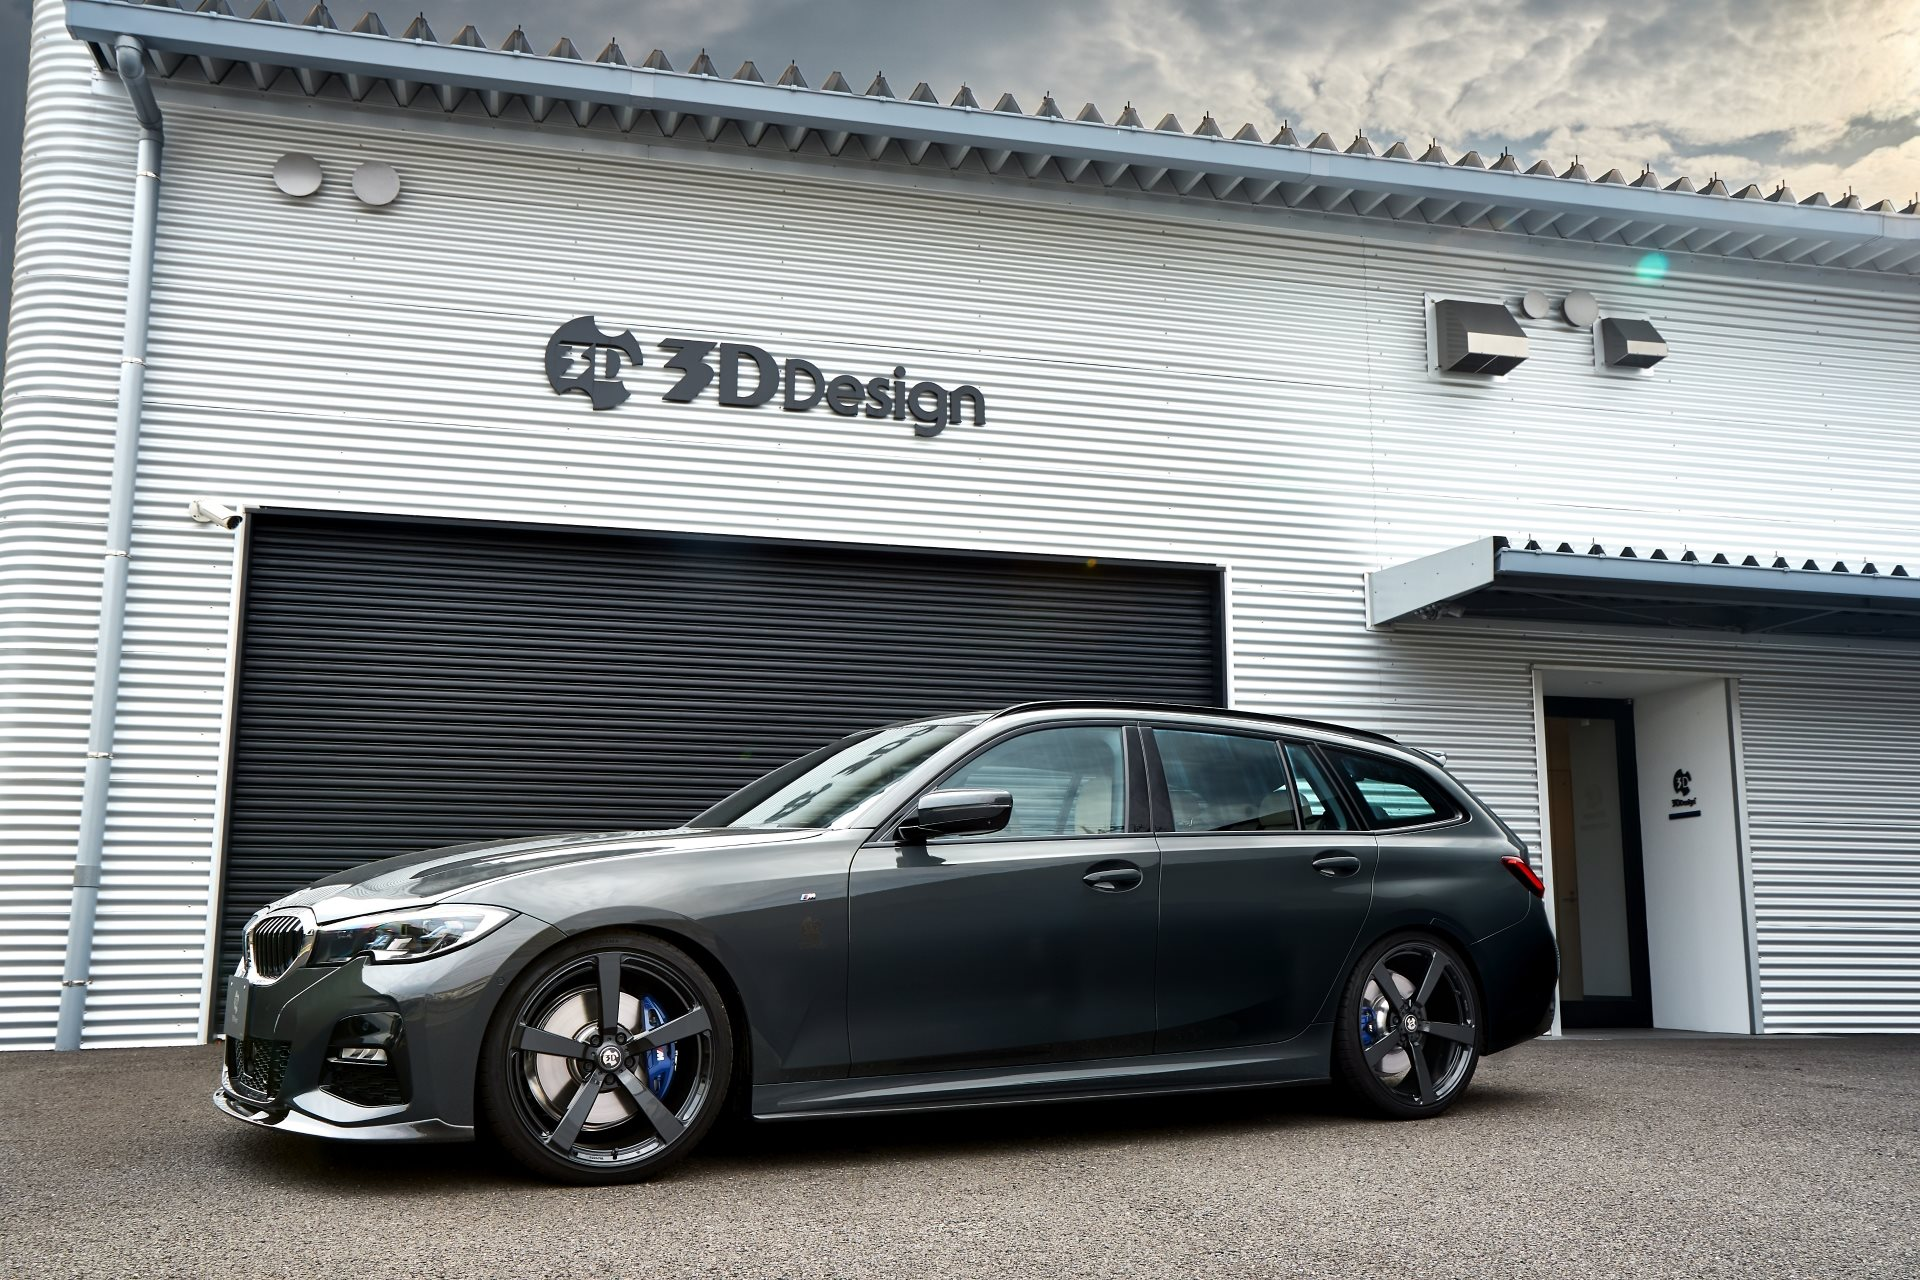 Name:  3D-Design-BMW-G21-3-Series-Touring-2.jpg